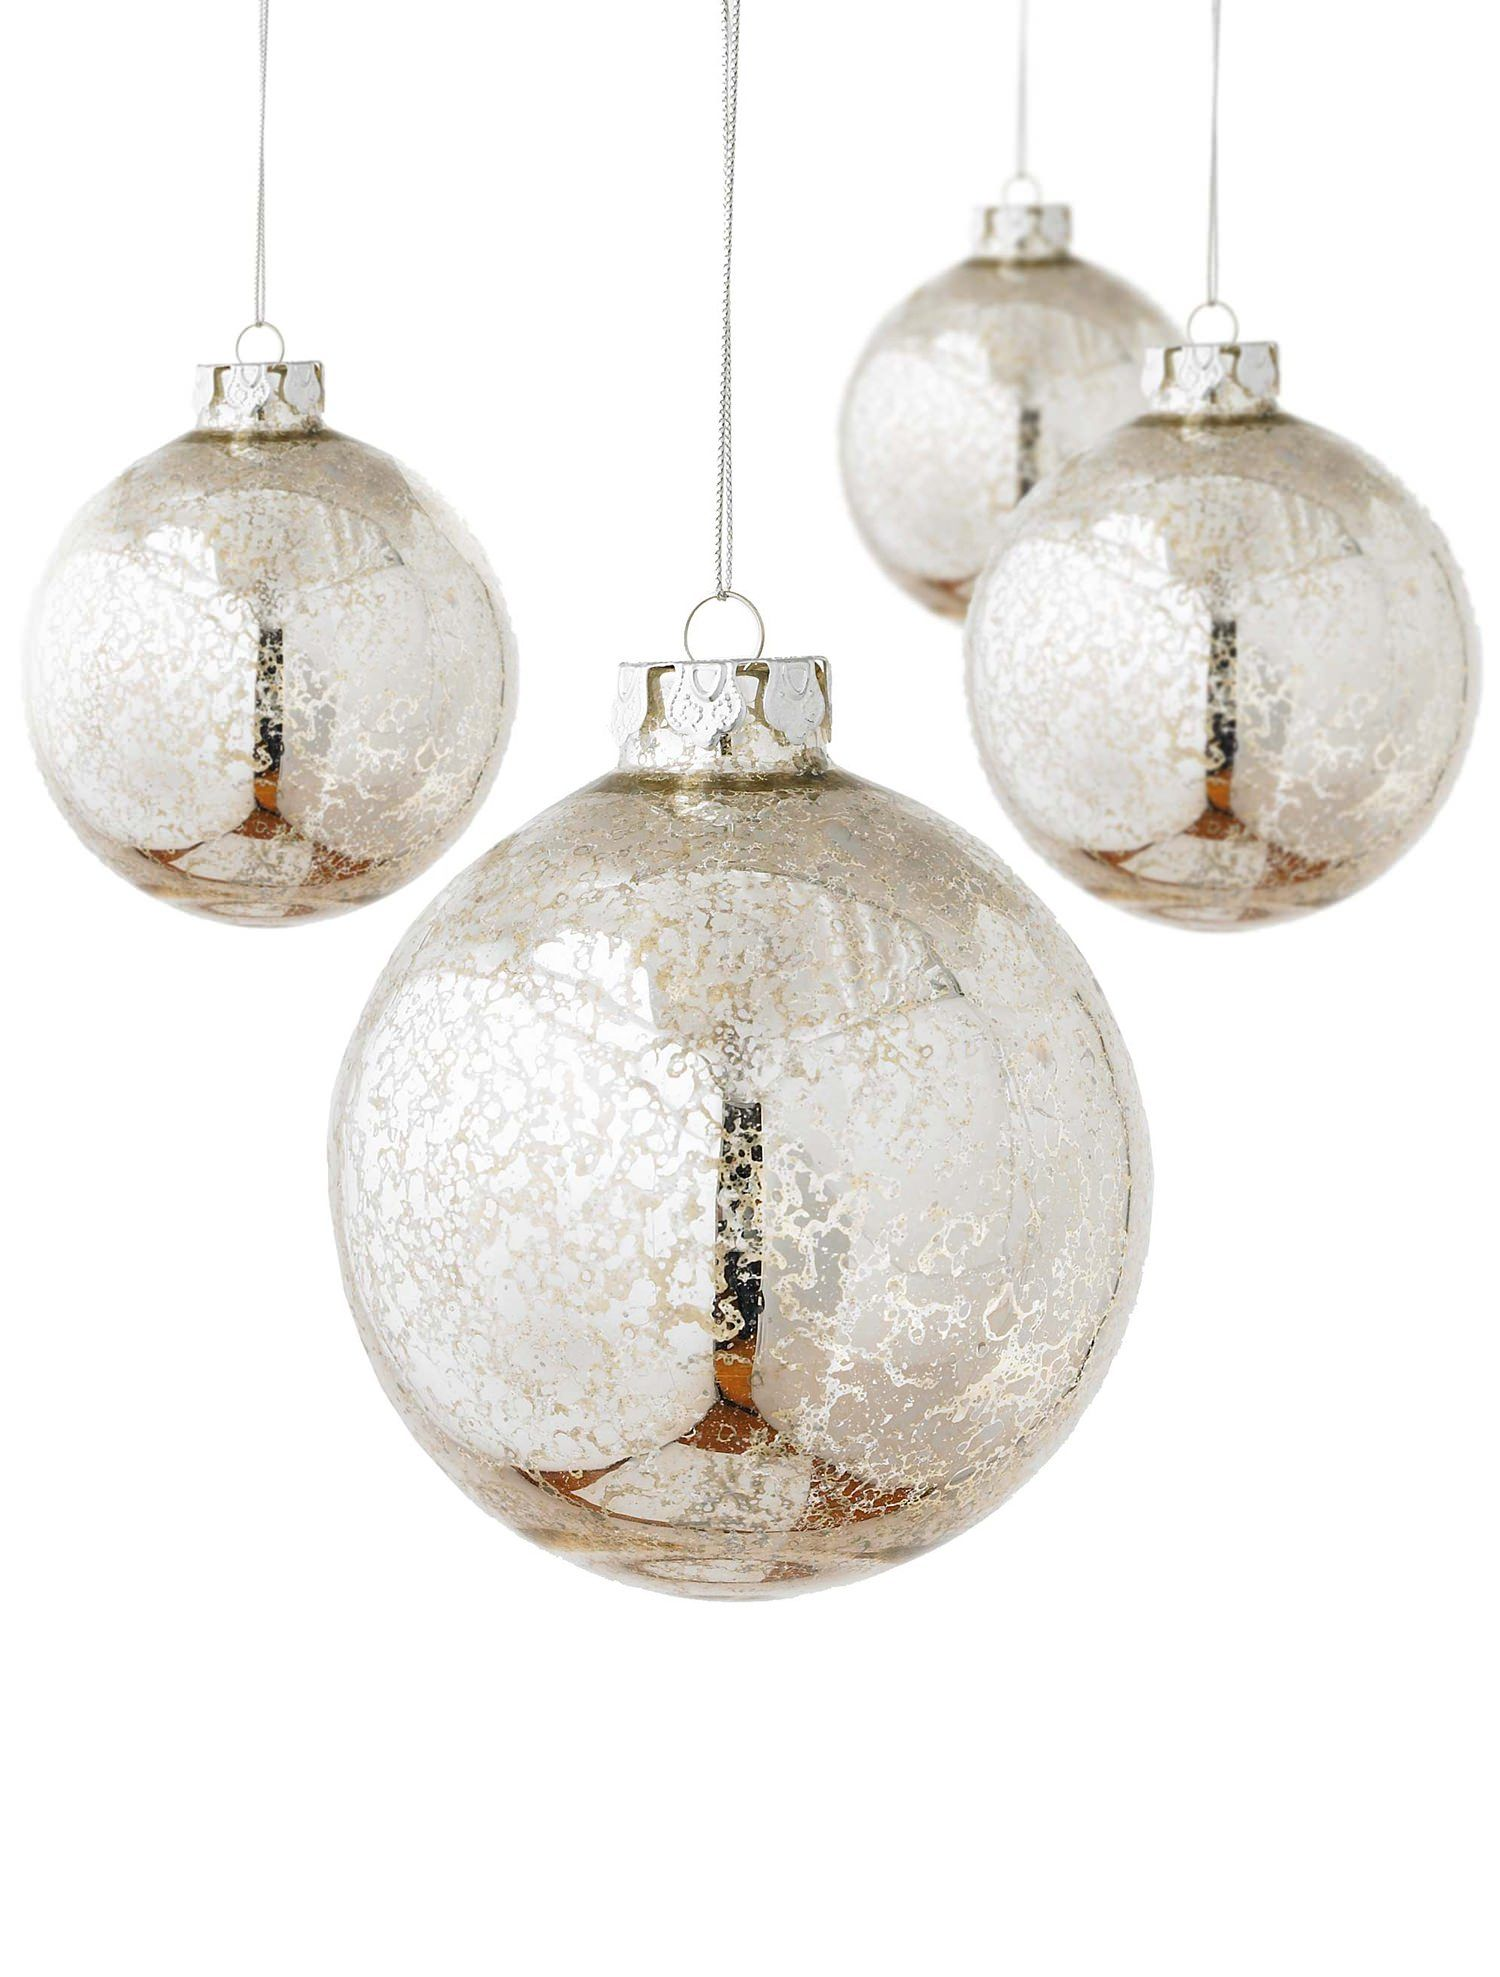 Silver Glass Christmas Ball Ornaments - Set Of 6 | Balsam Hill ...